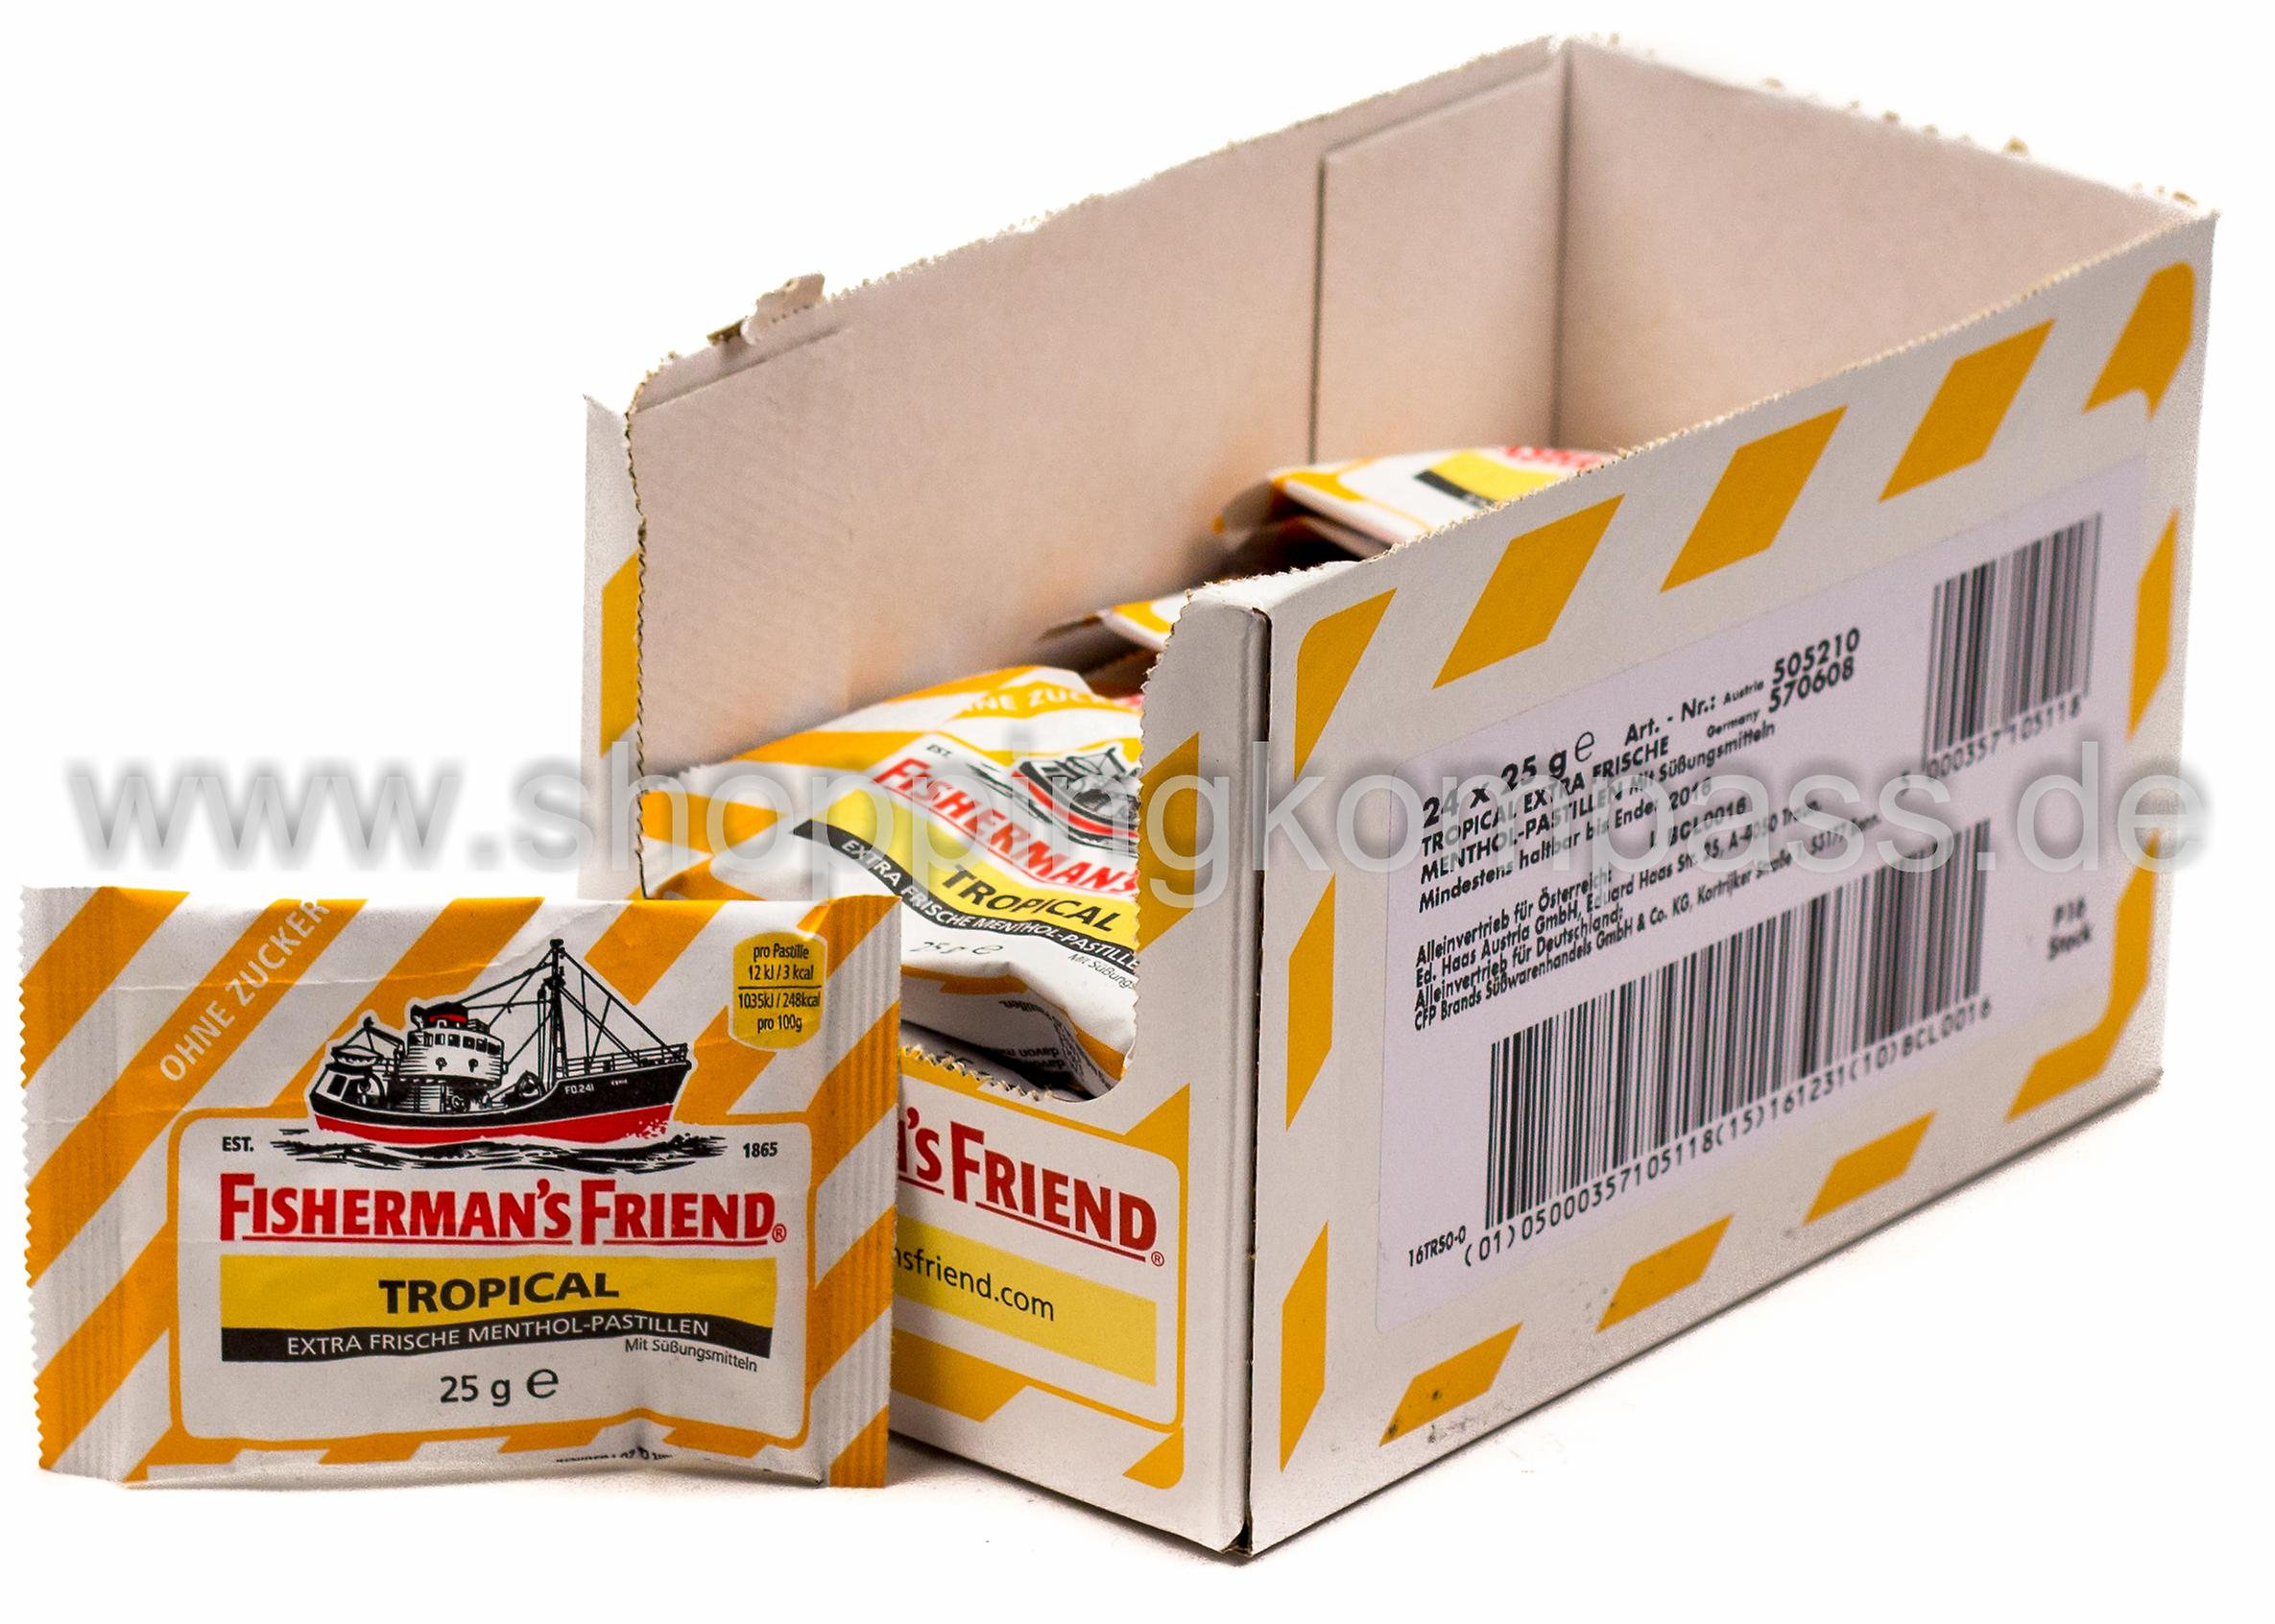 Fisherman's Friend Frische Tropical Pastillen Karton 24 x 25 g